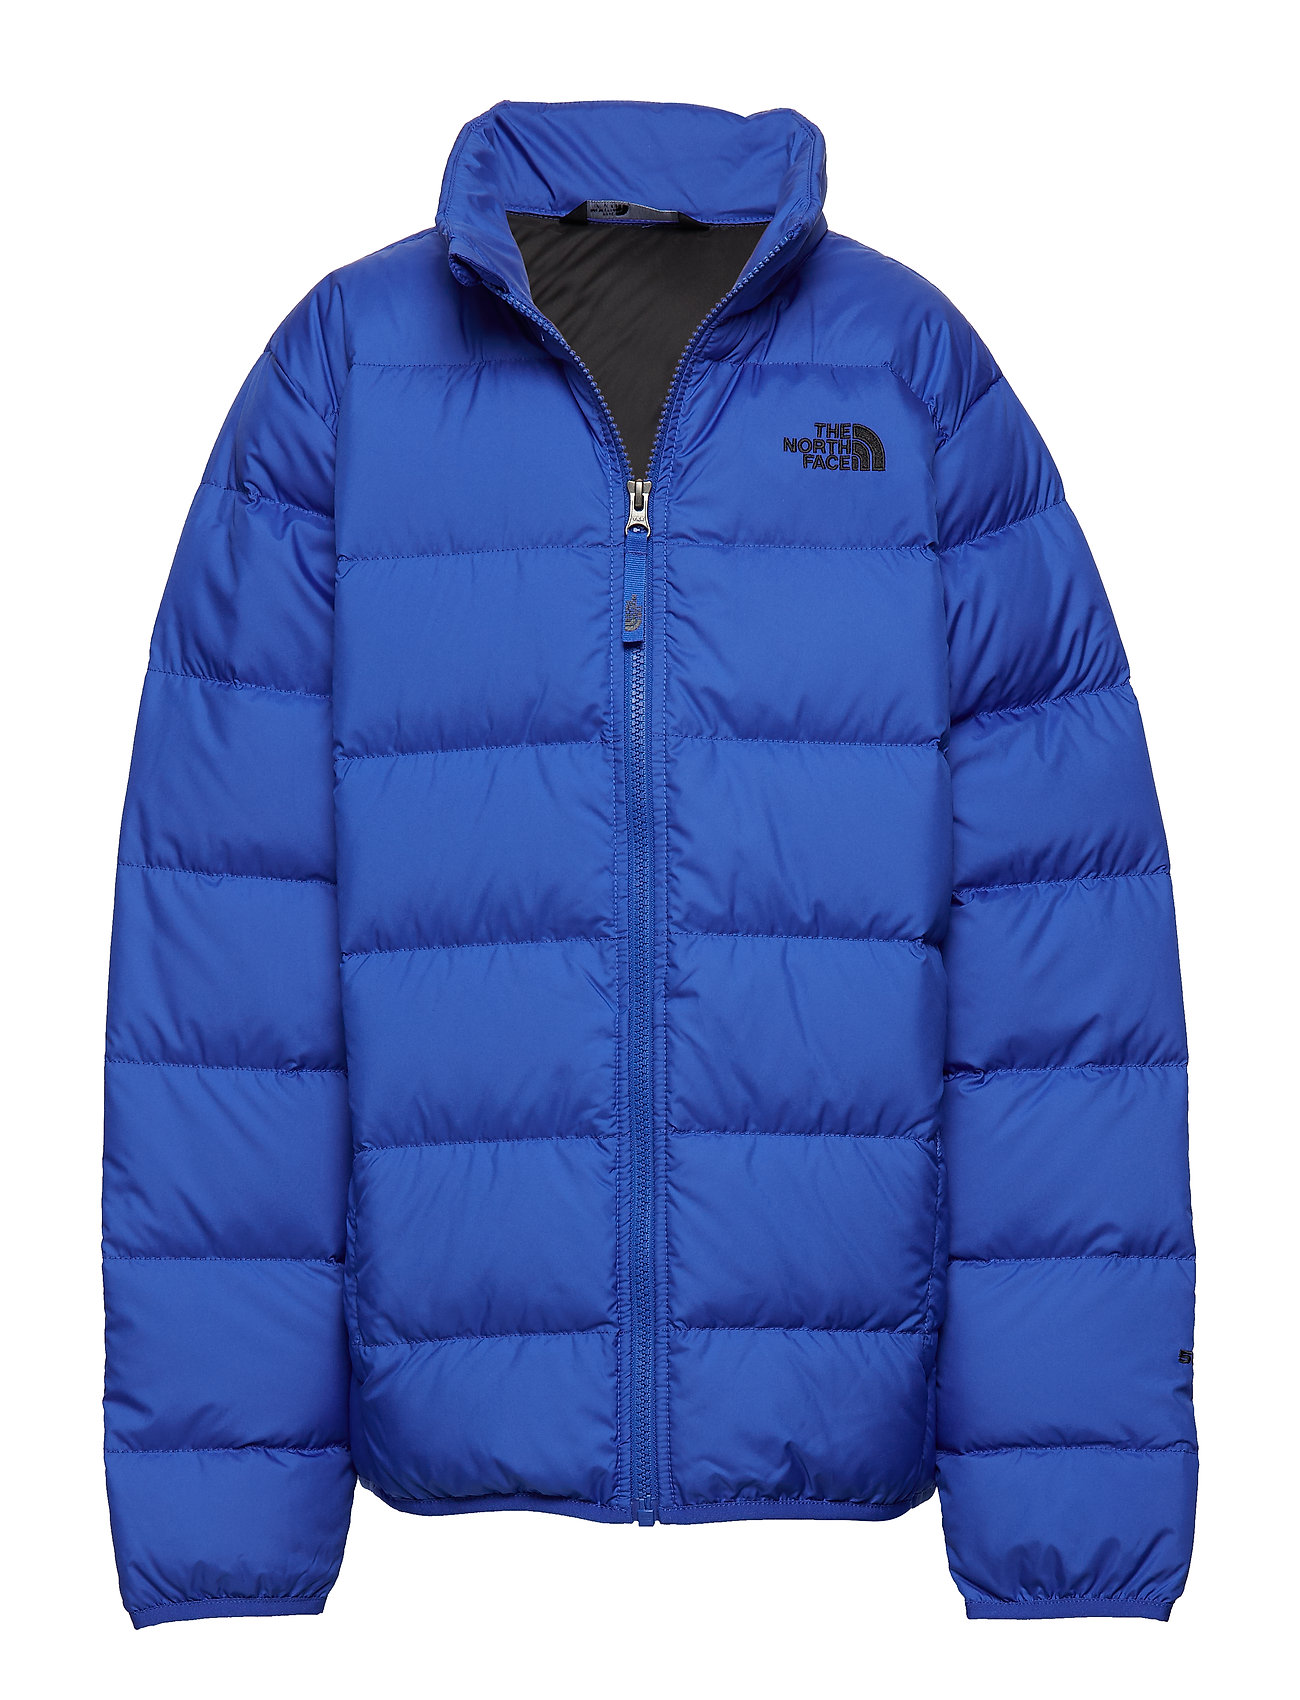 The North Face B ANDES JACKET - TNF BLUE